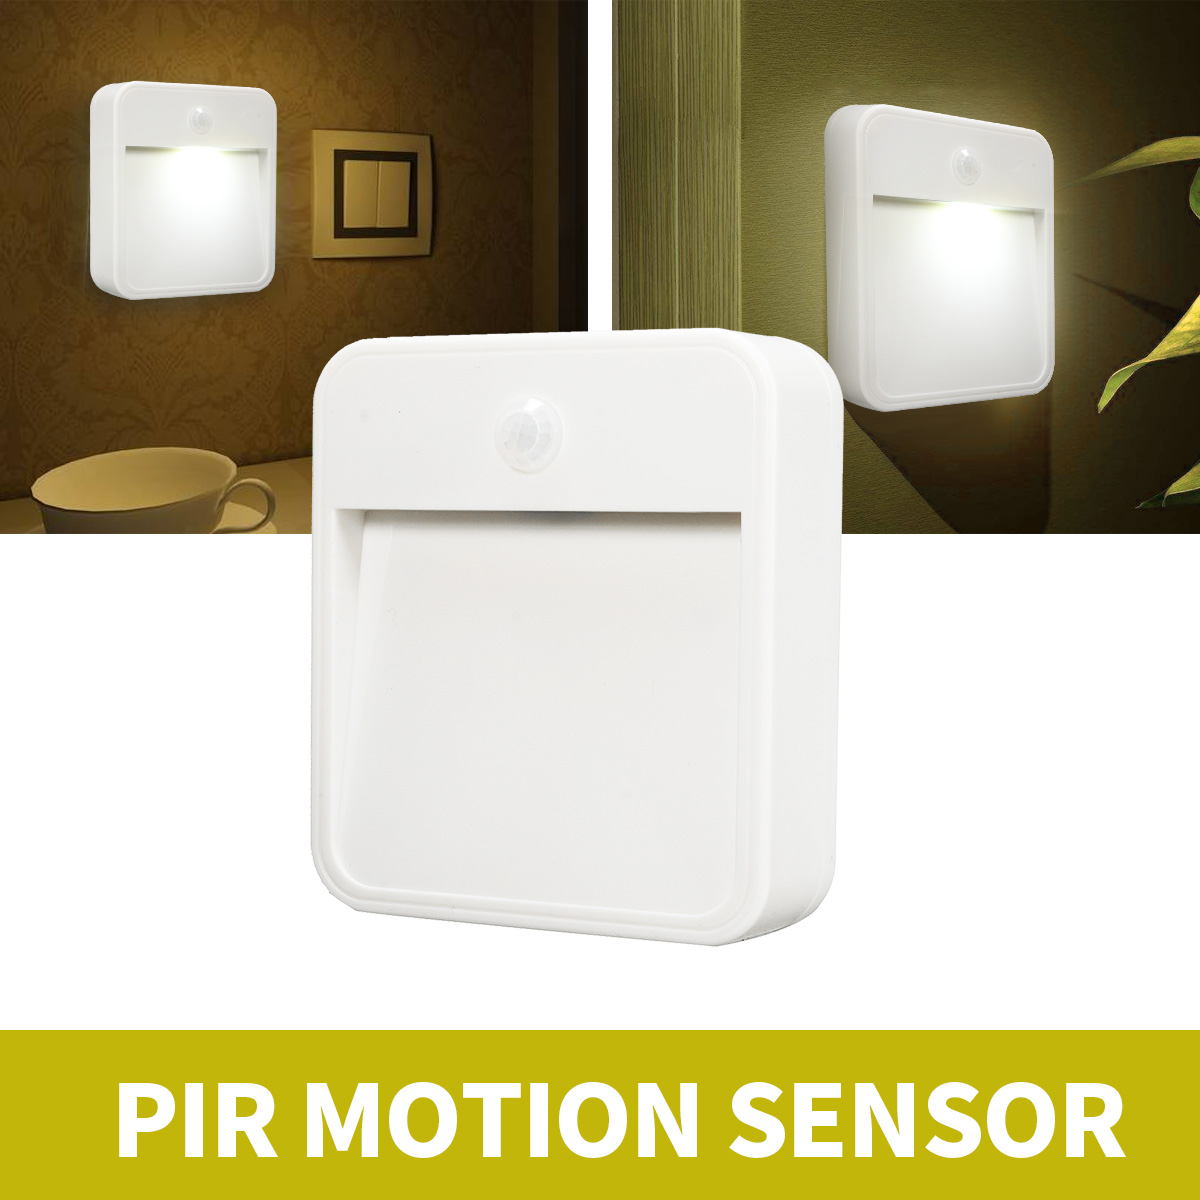 Battery Operated PIR Body Motion Sensor LED Night Light Square Wall Plug in Night Lamp Home Bedroom Security Lighting